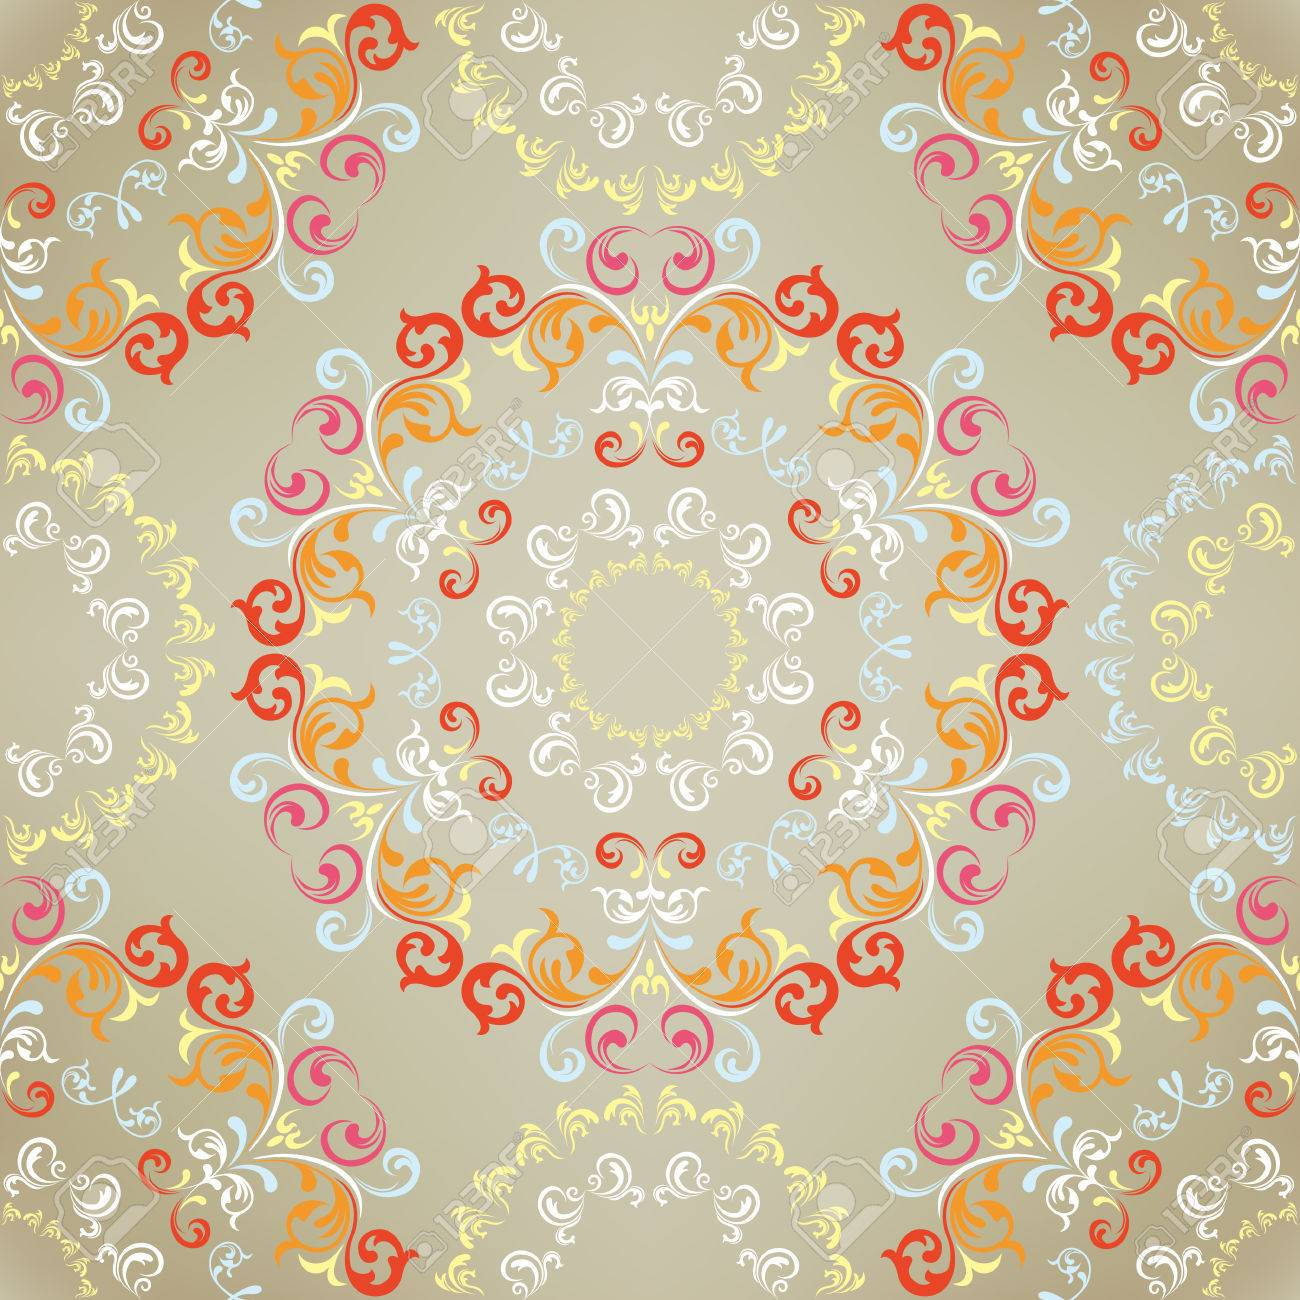 Seamless floral pattern. Illustration Stock Vector - 8698606